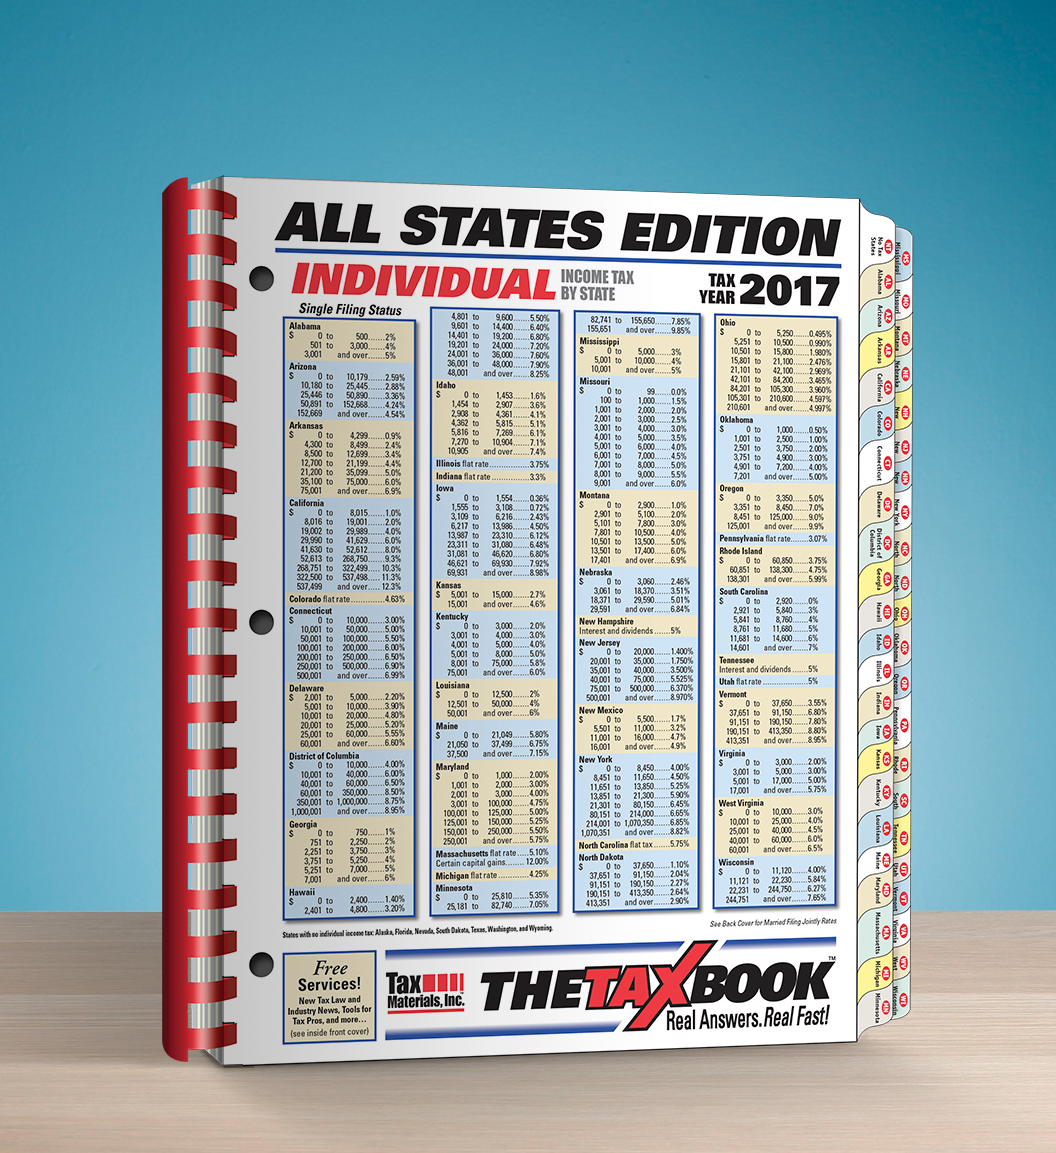 TheTaxBook All States Edition Fast Answer Tax Book (2017) - #3787